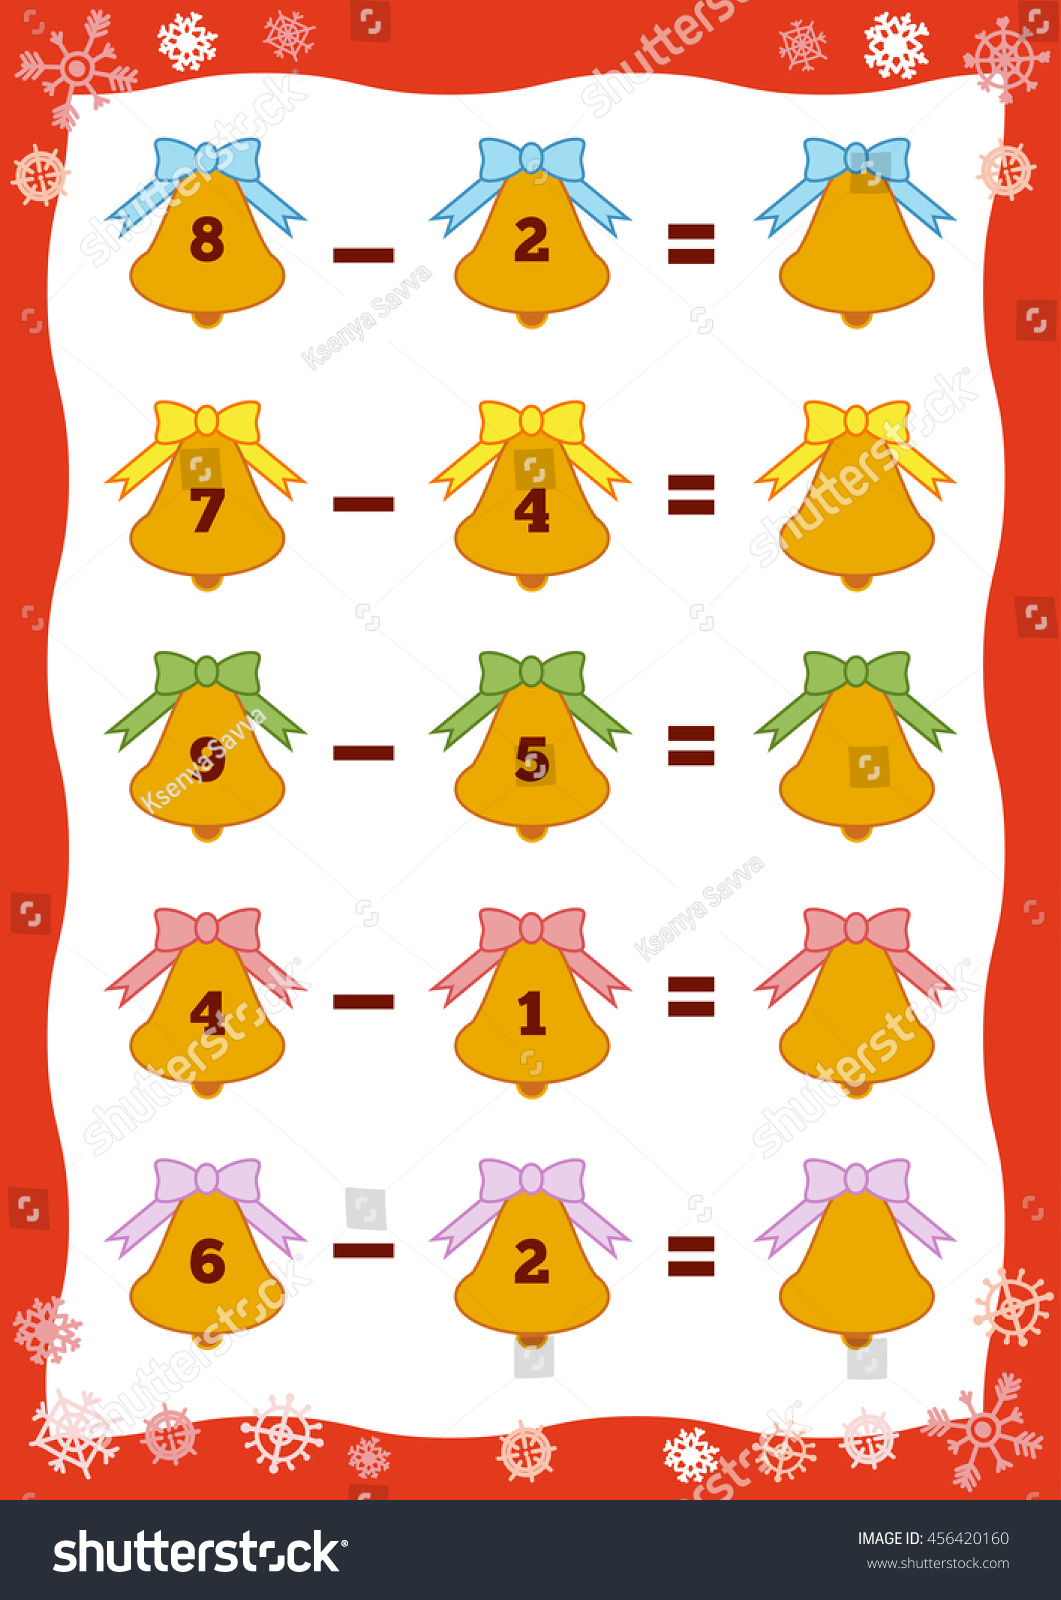 Worksheet Count The Numbers counting game for preschool children educational a mathematical count the numbers in the